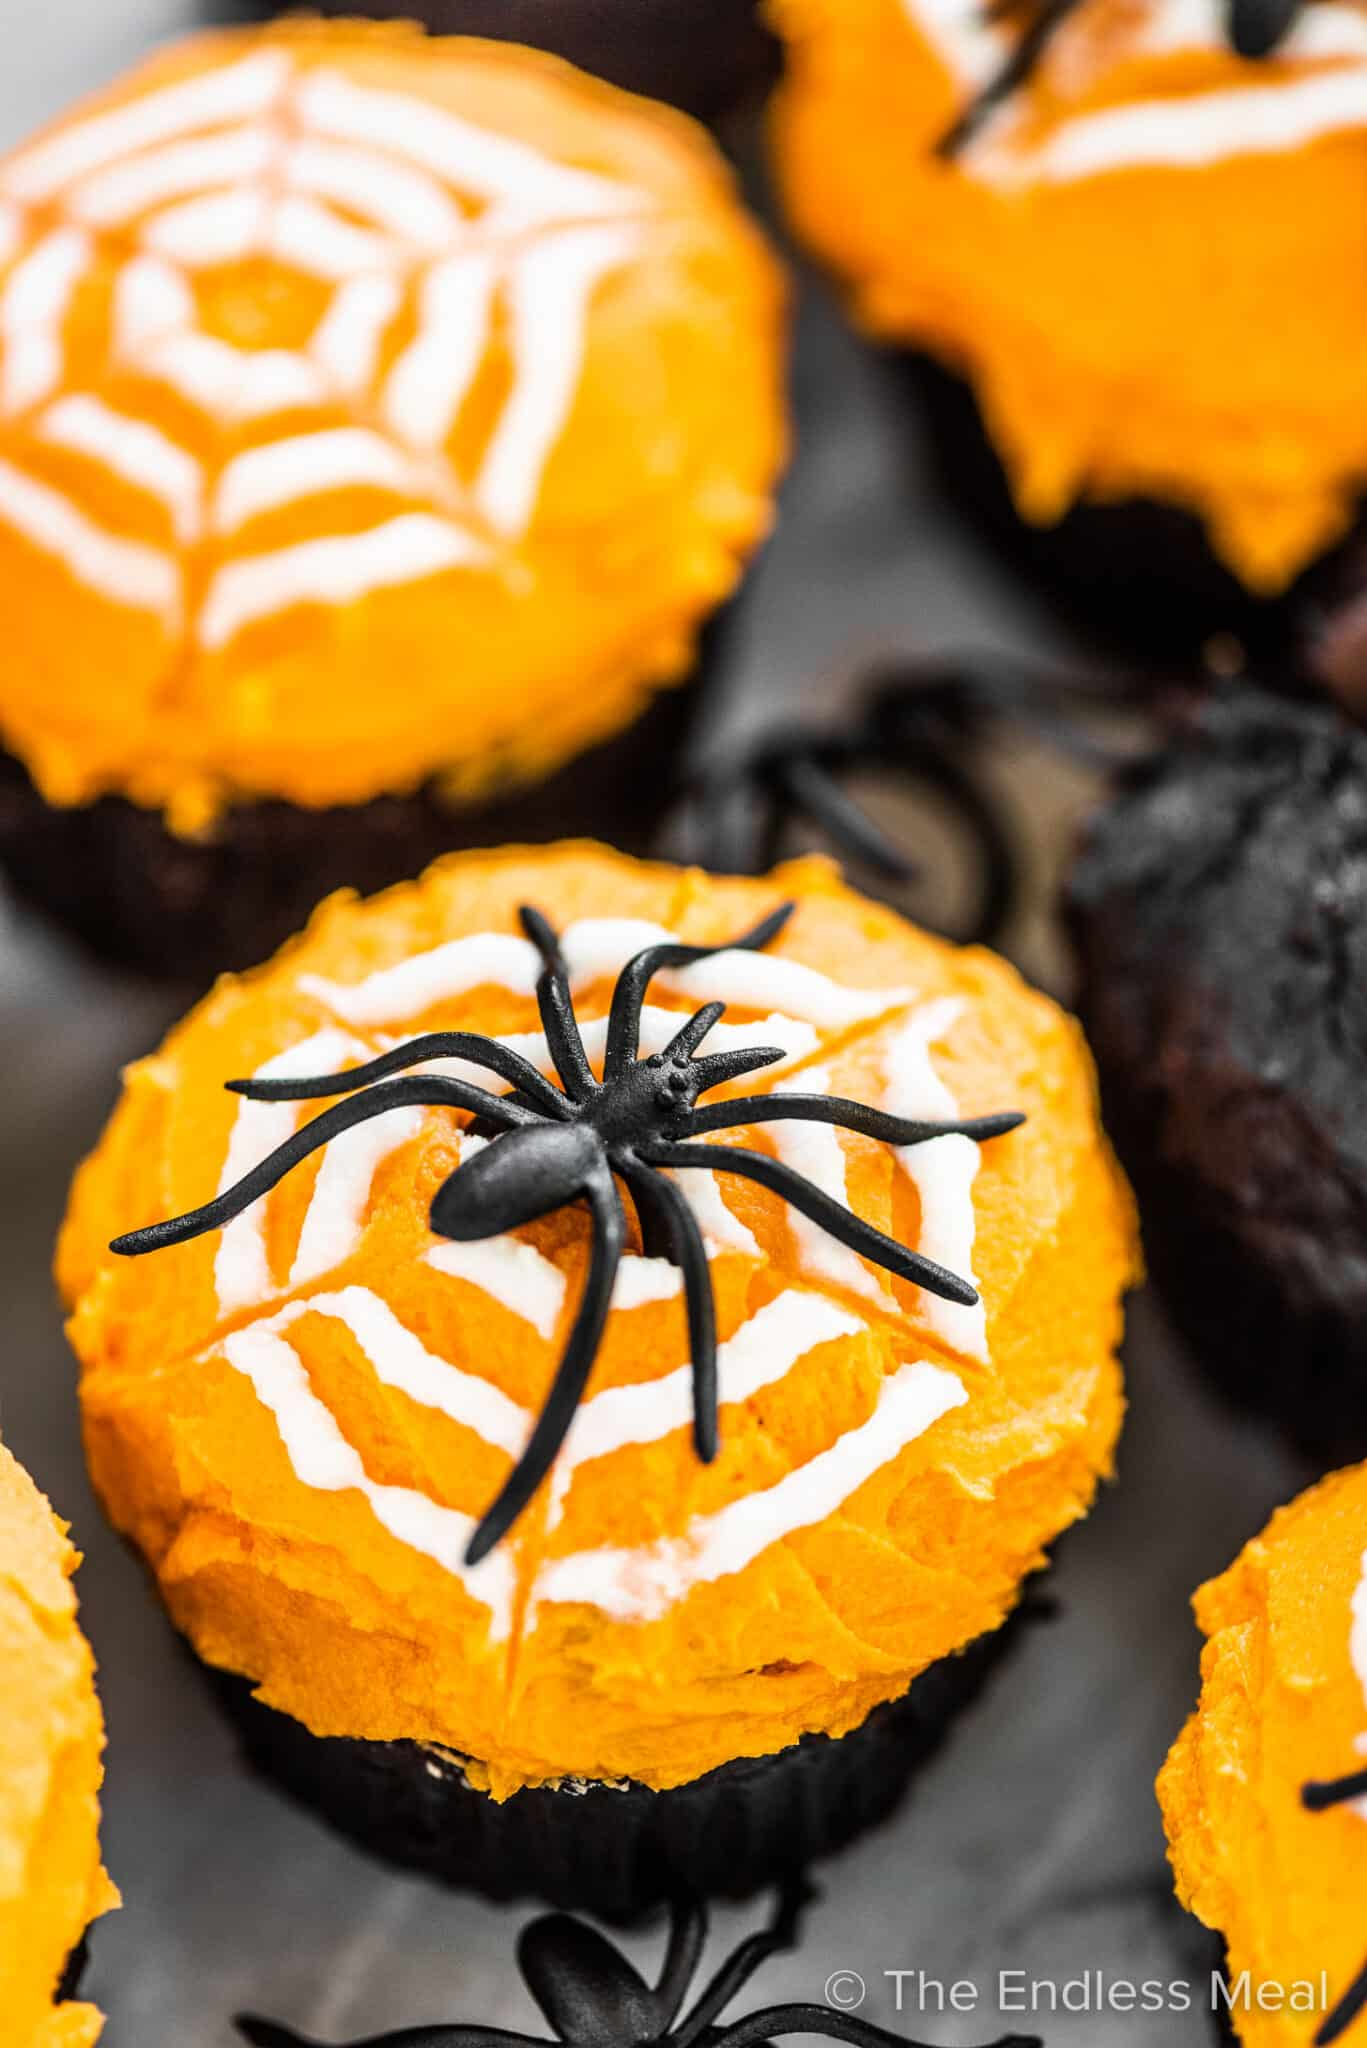 Pumpkin chocolate cupcakes decorated with orange icing an a spider web and spider on top.